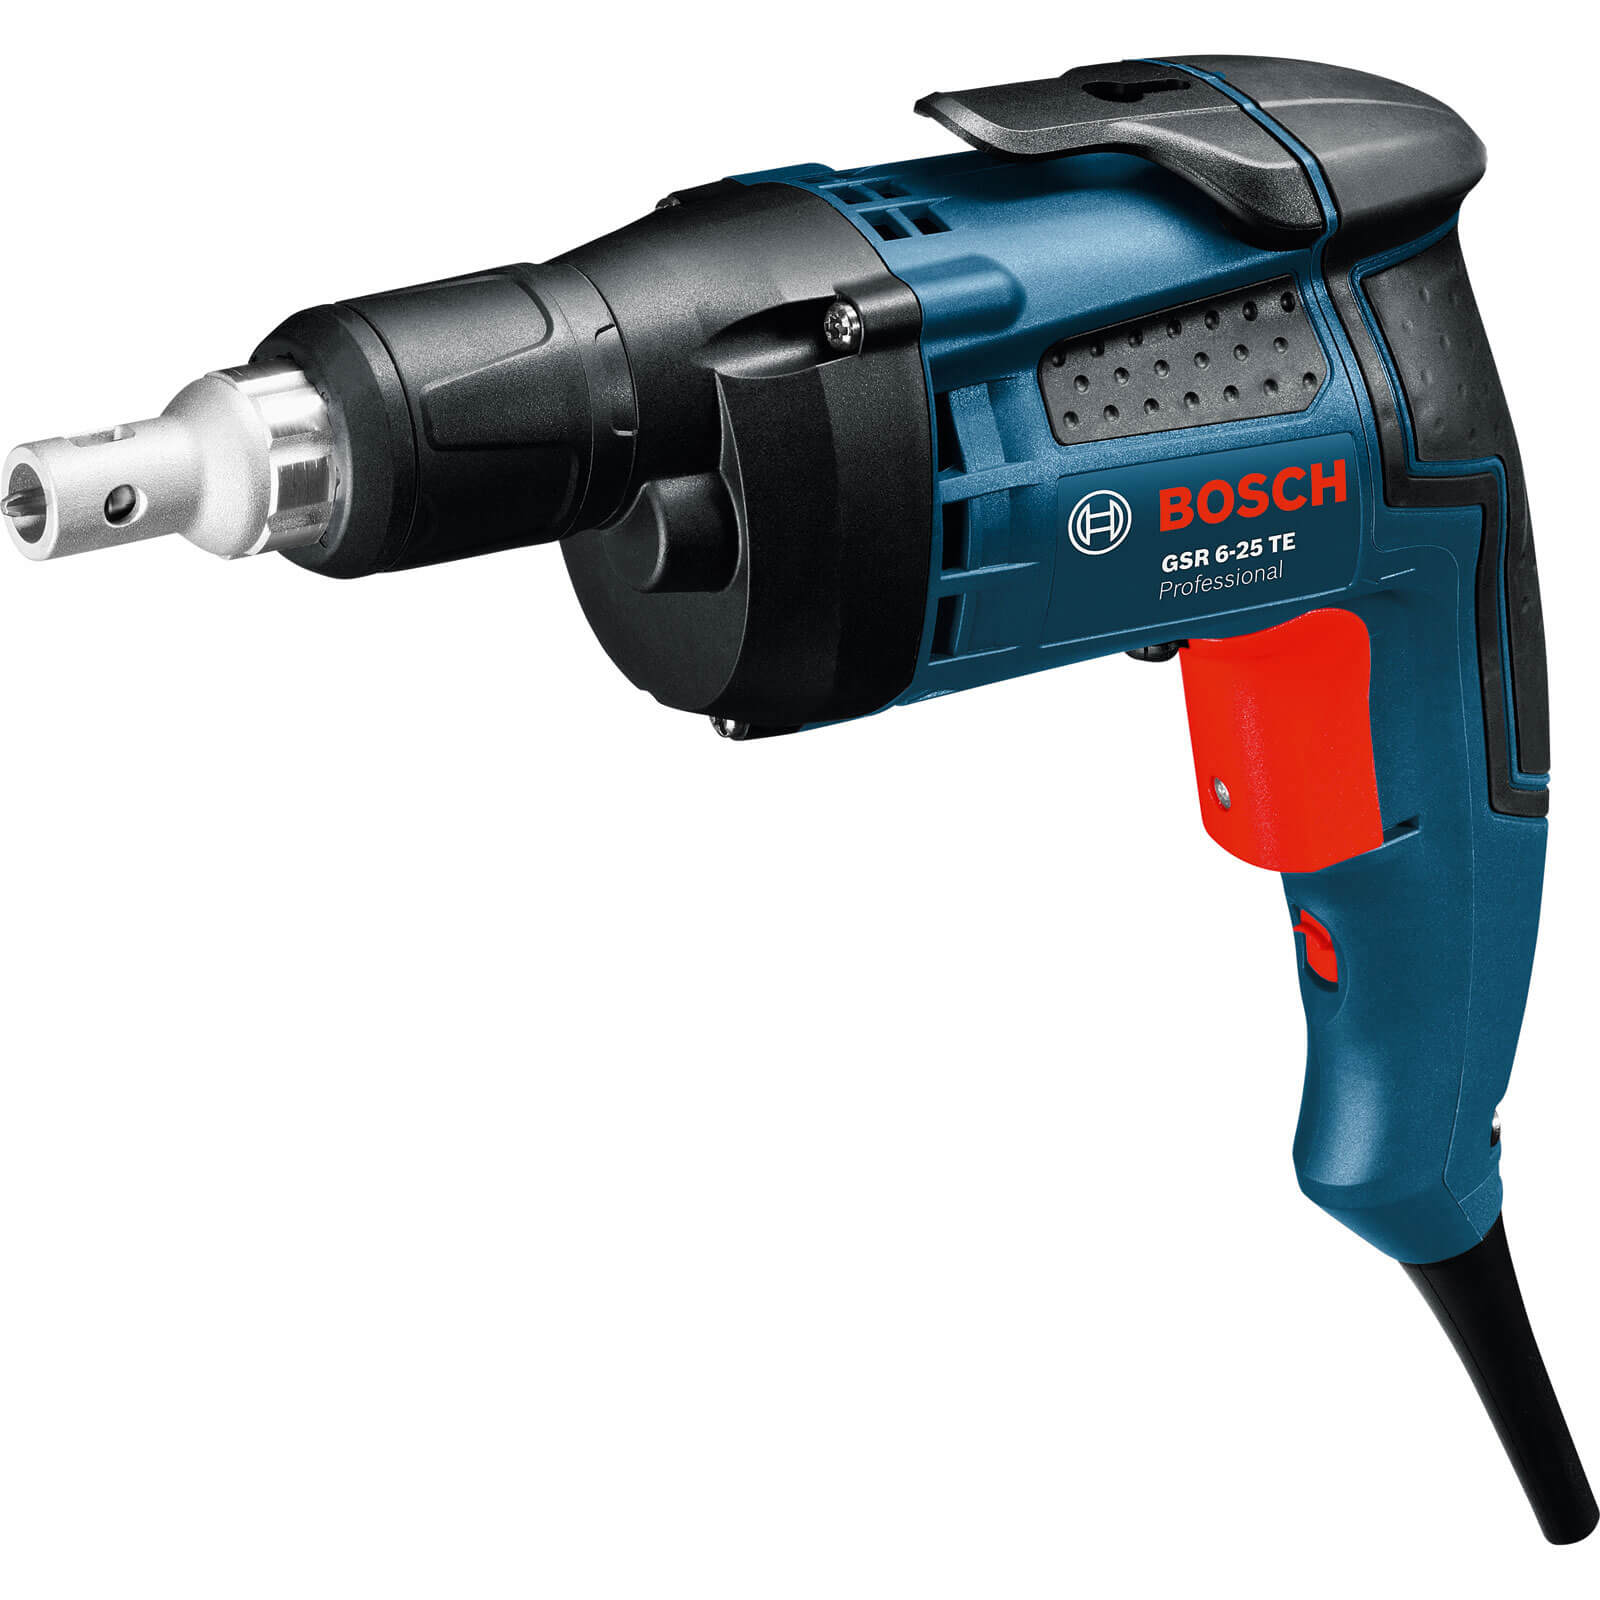 Bosch GSR 6-25 TE Decking & Hardwood Screwdriver 701w 110v